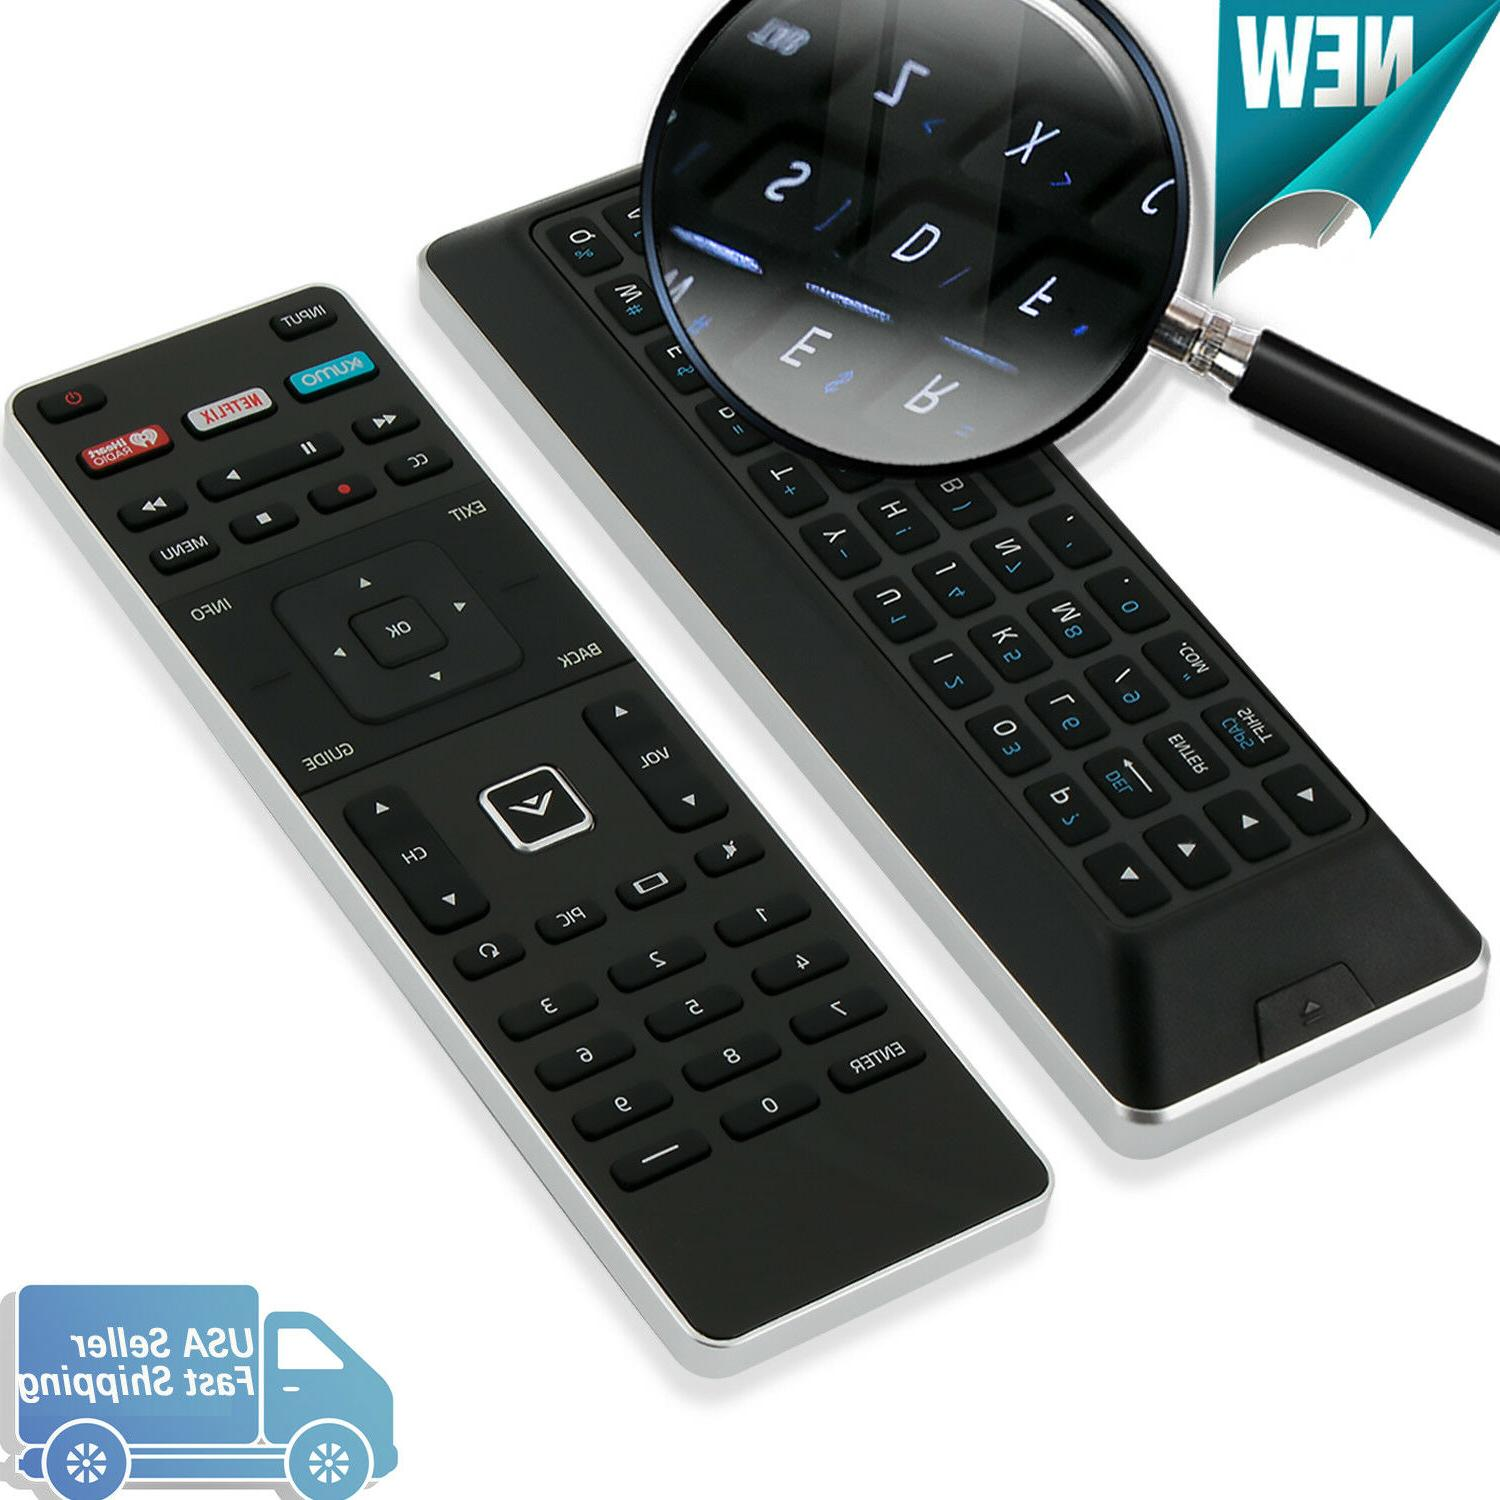 New Remote Control XRT500 for Vizio Smart TV with Xumo Netflix Iheart Back-light